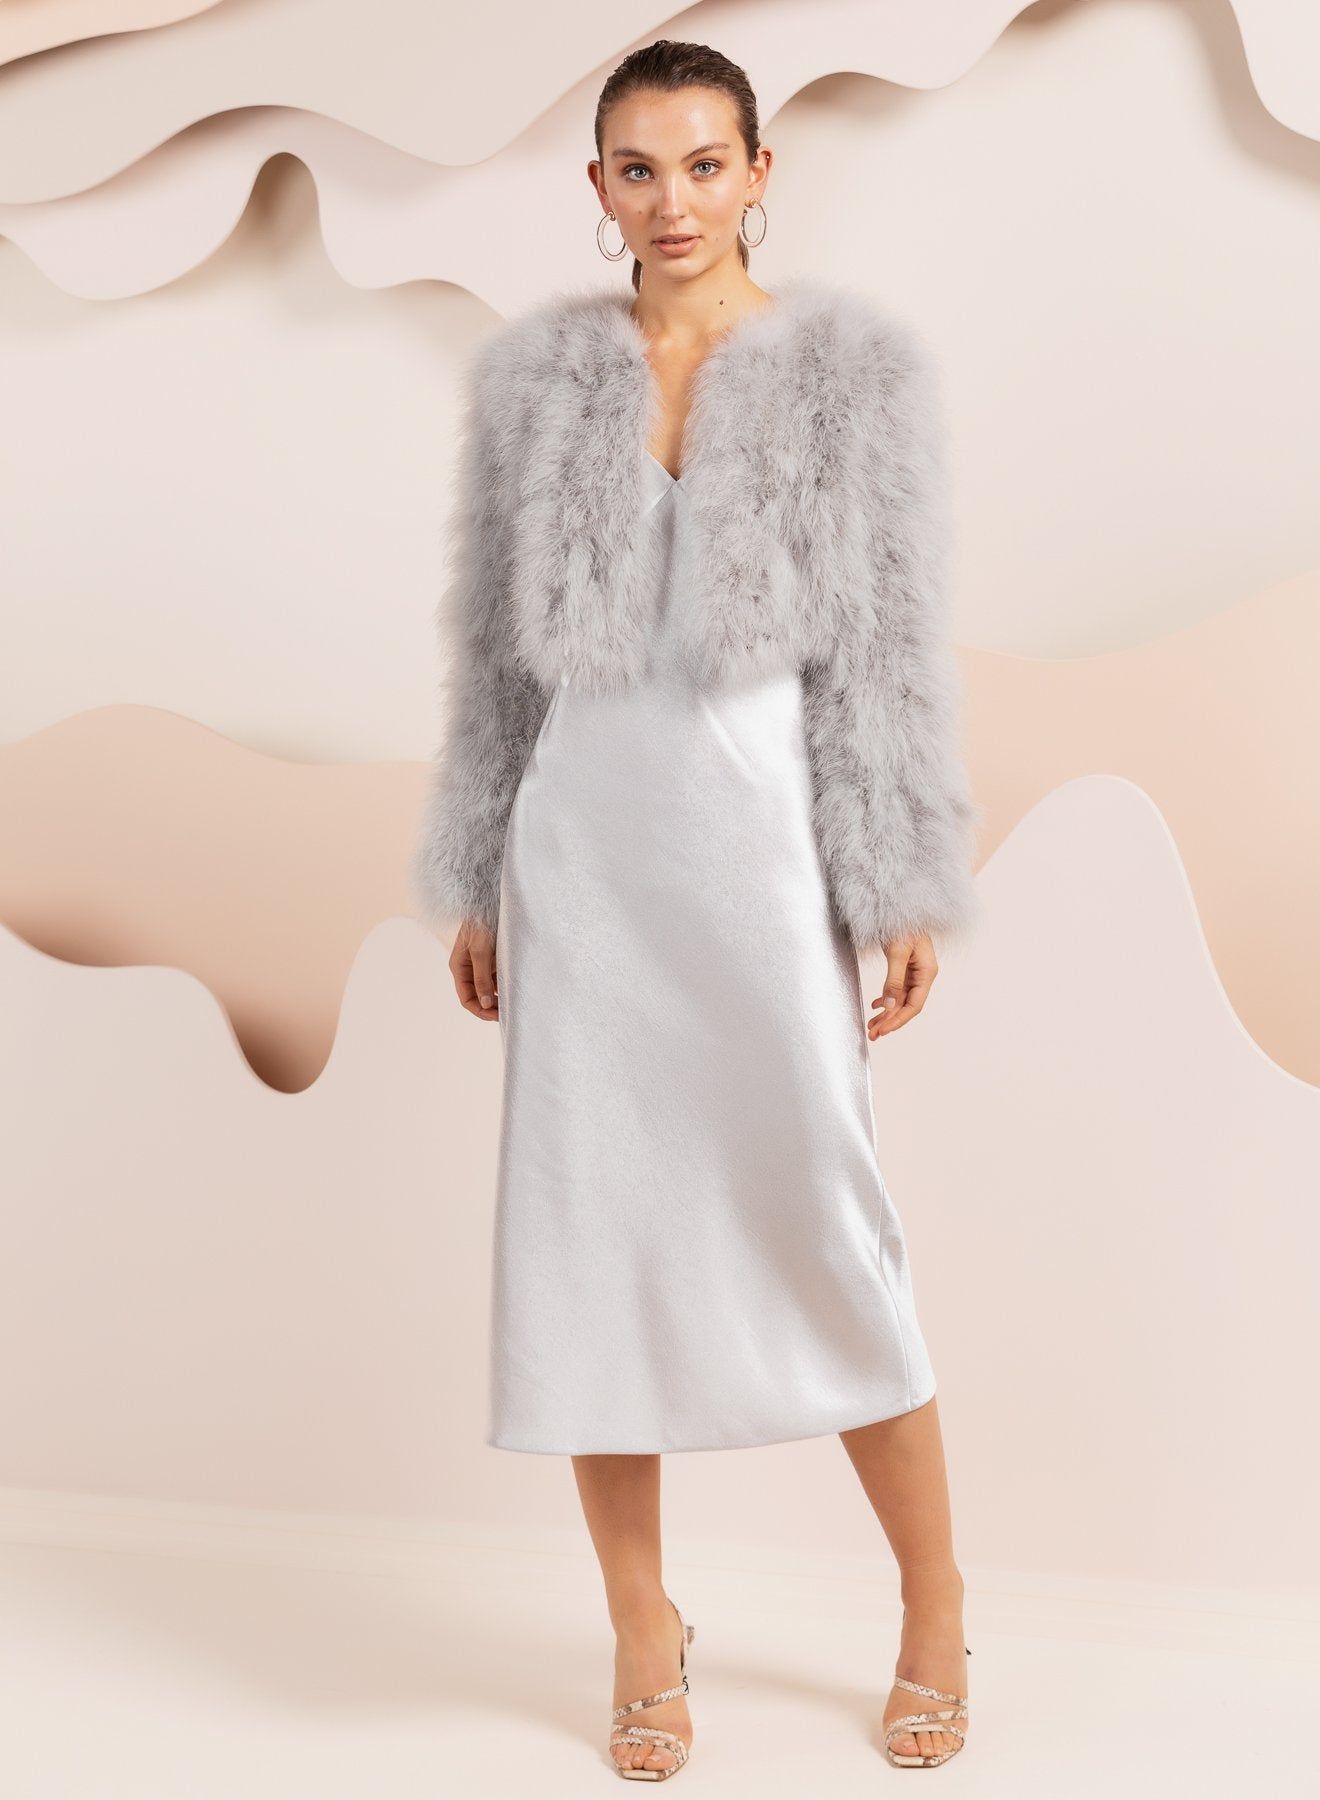 bubish Bridesmaid feather jacket in light grey